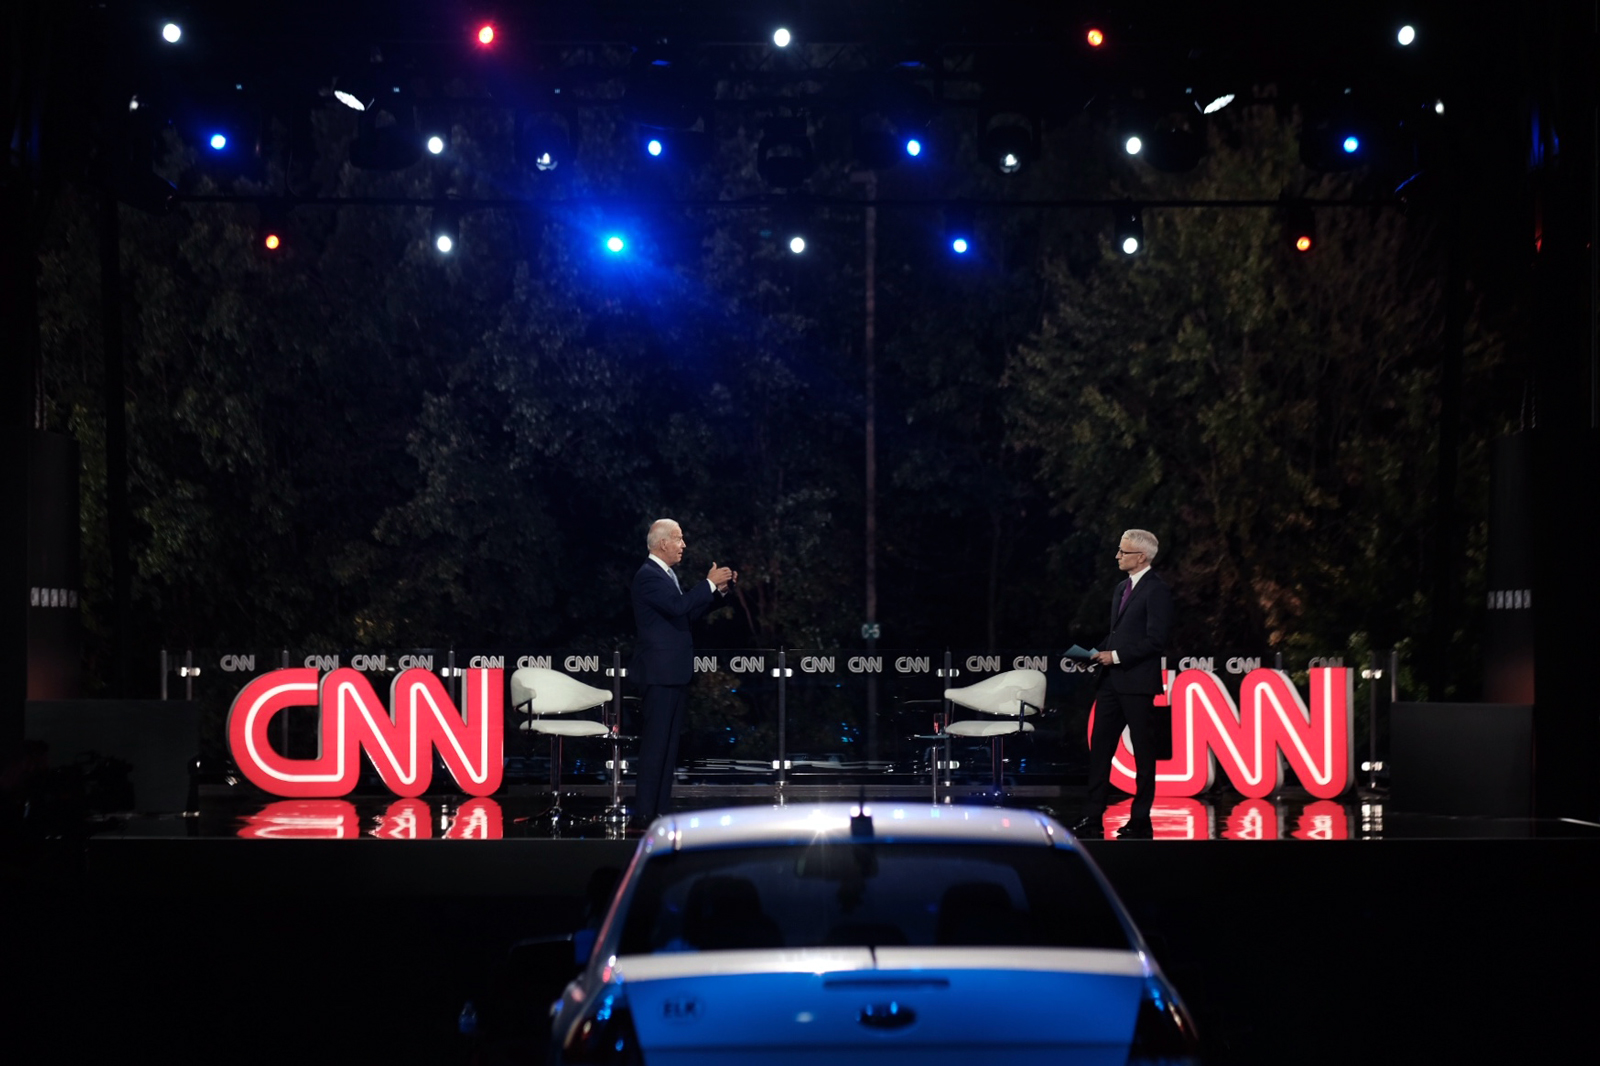 Democratic presidential nominee Joe Biden speaks with CNN's Anderson Cooper at the CNN Presidential Town Hall in Scranton, Pennsylvania, on Thursday, September 17.